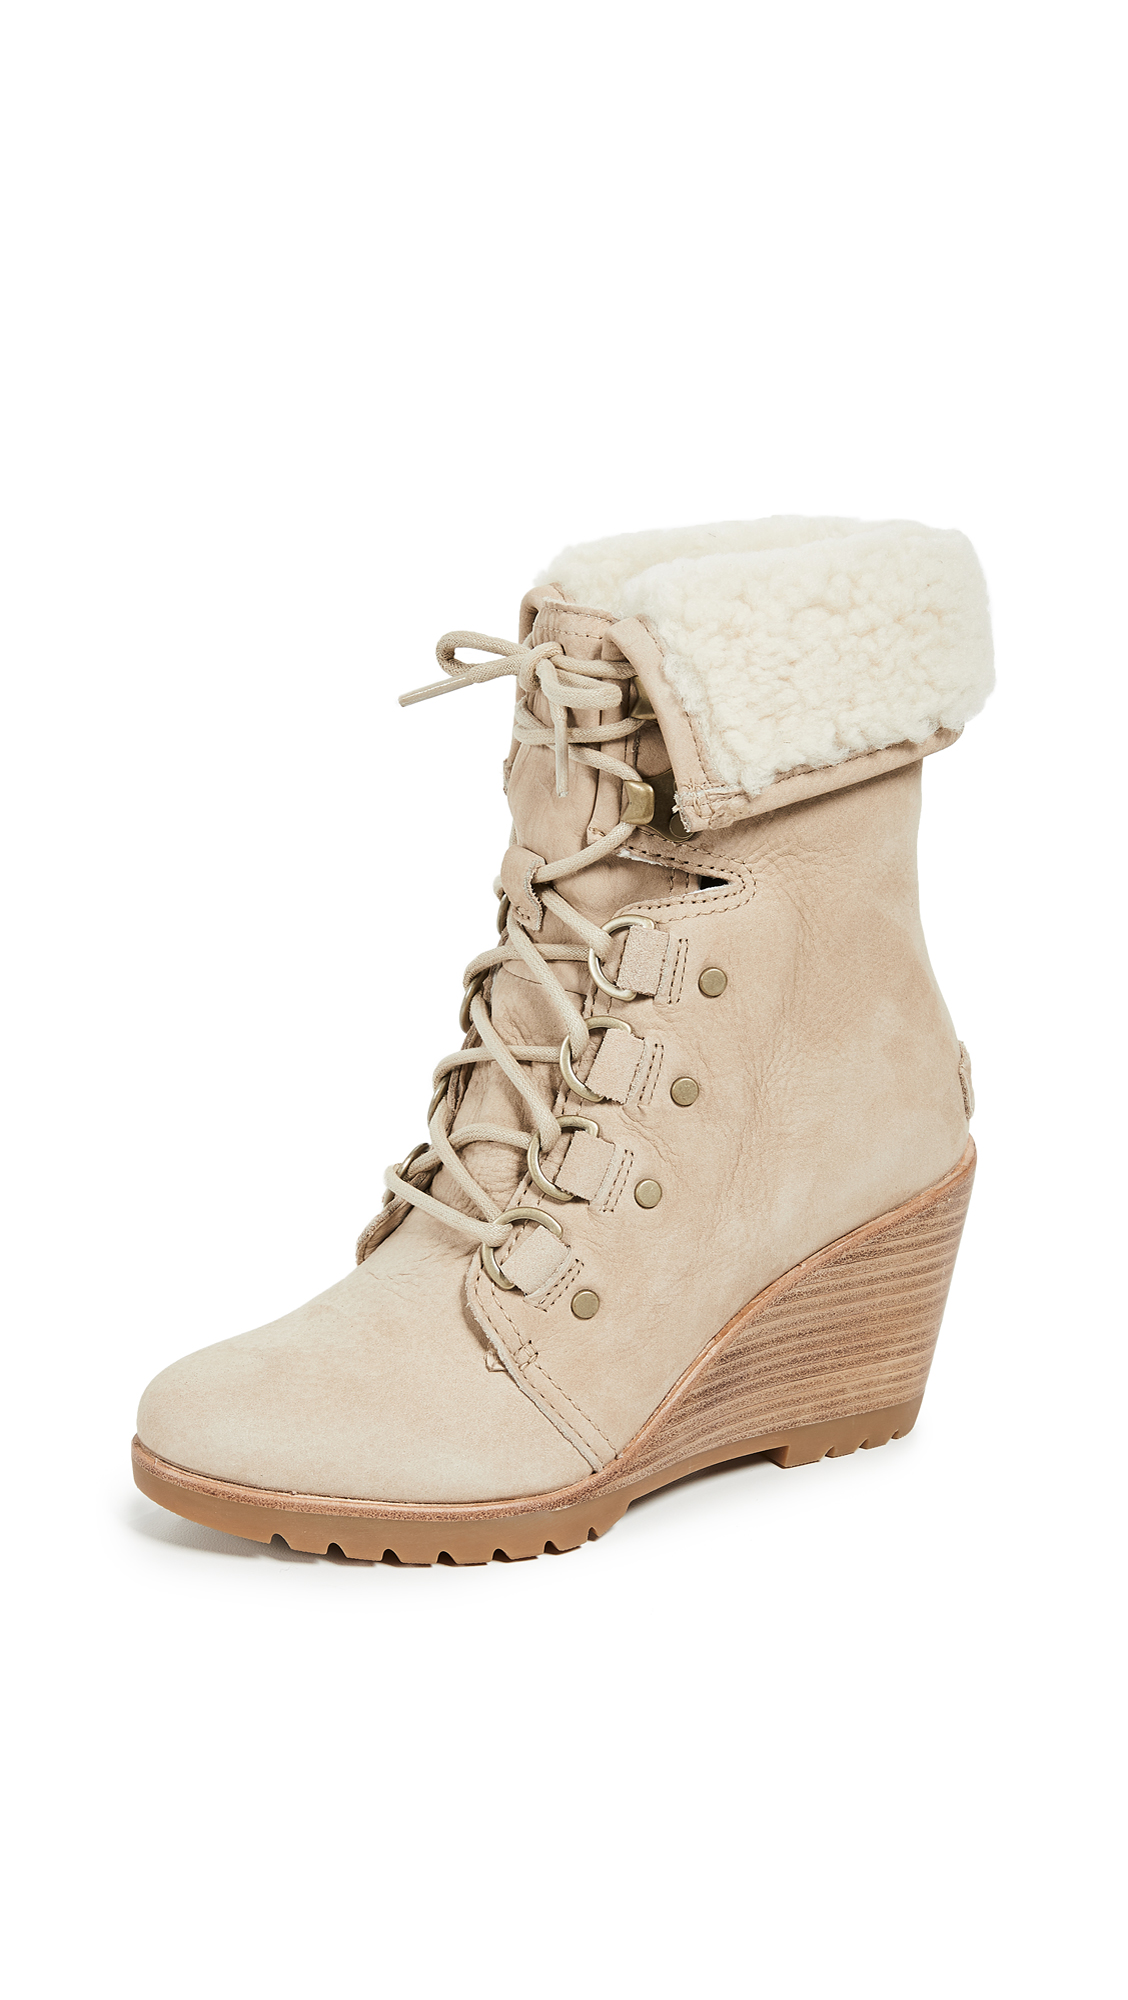 Sorel After Hours Lace Up Shea Boots - Oatmeal